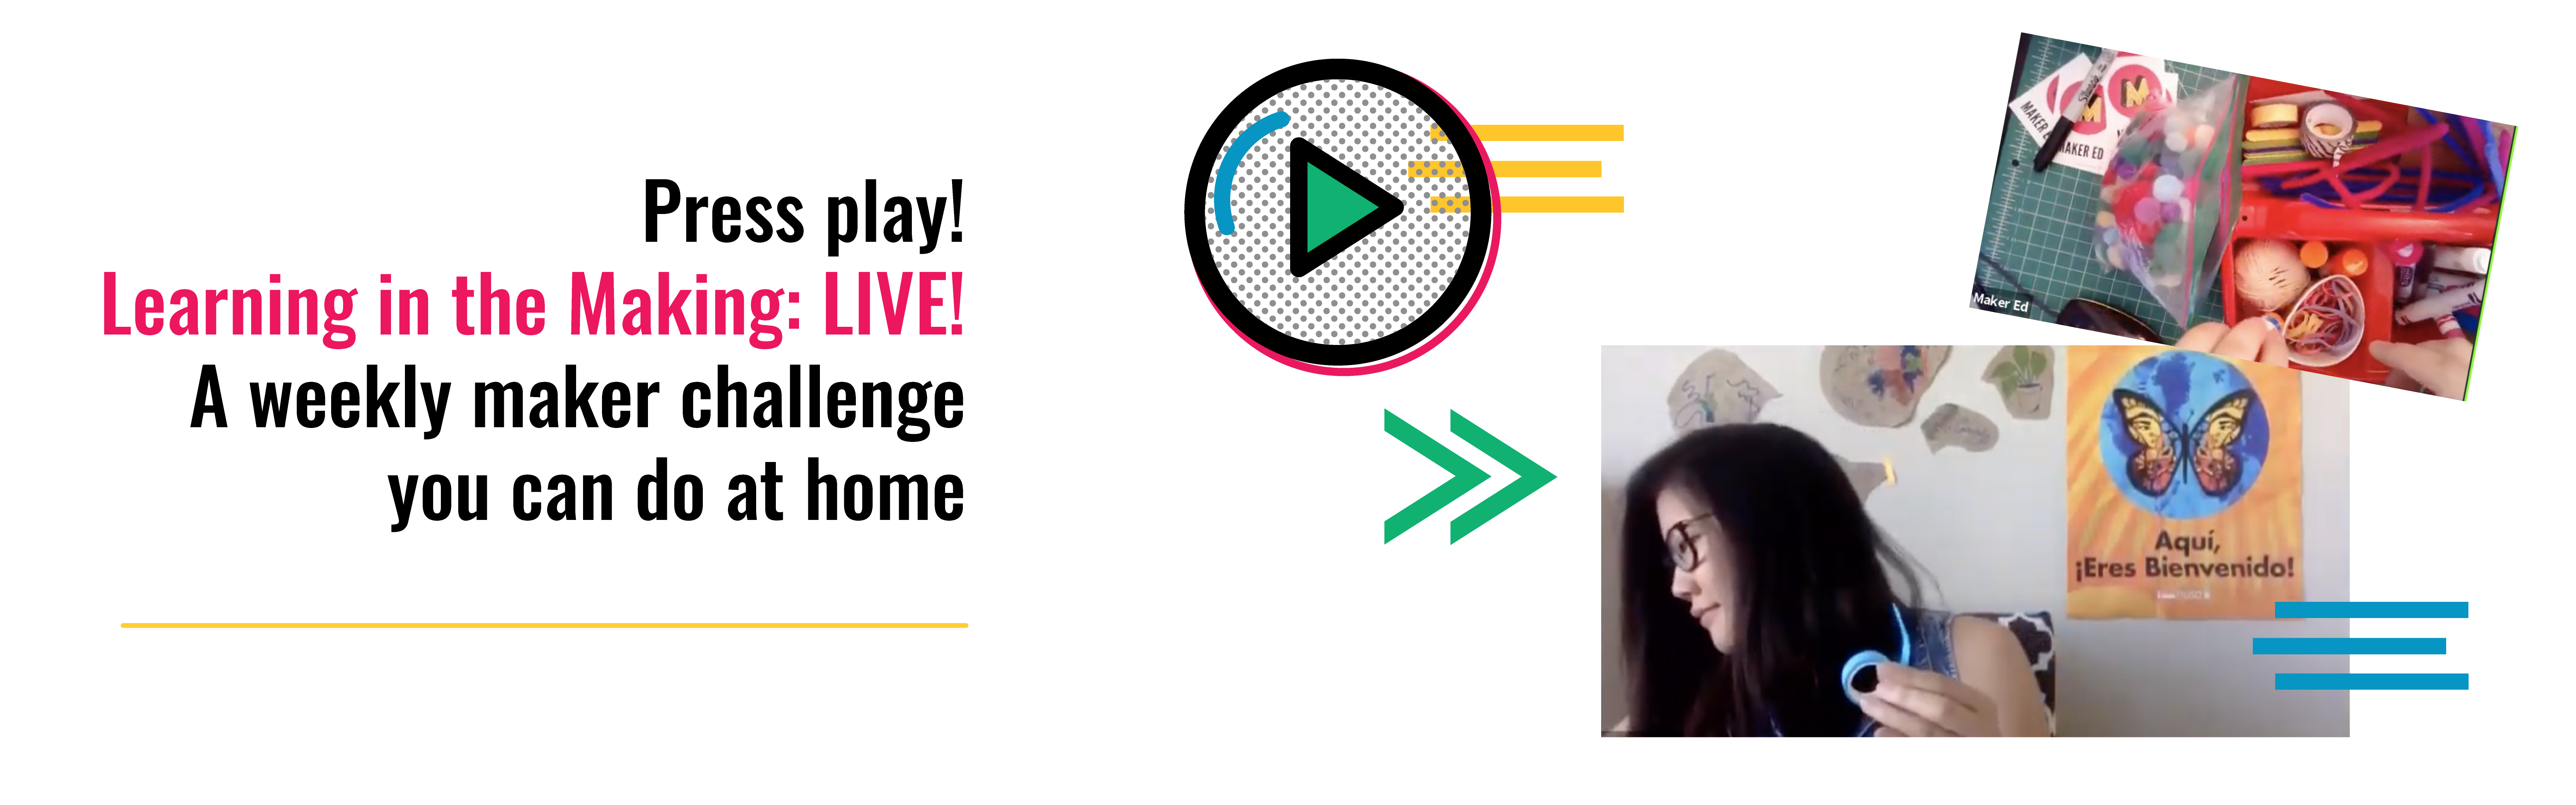 Press play! Learning in the Making: LIVE! A weekly maker challenge you can do at home